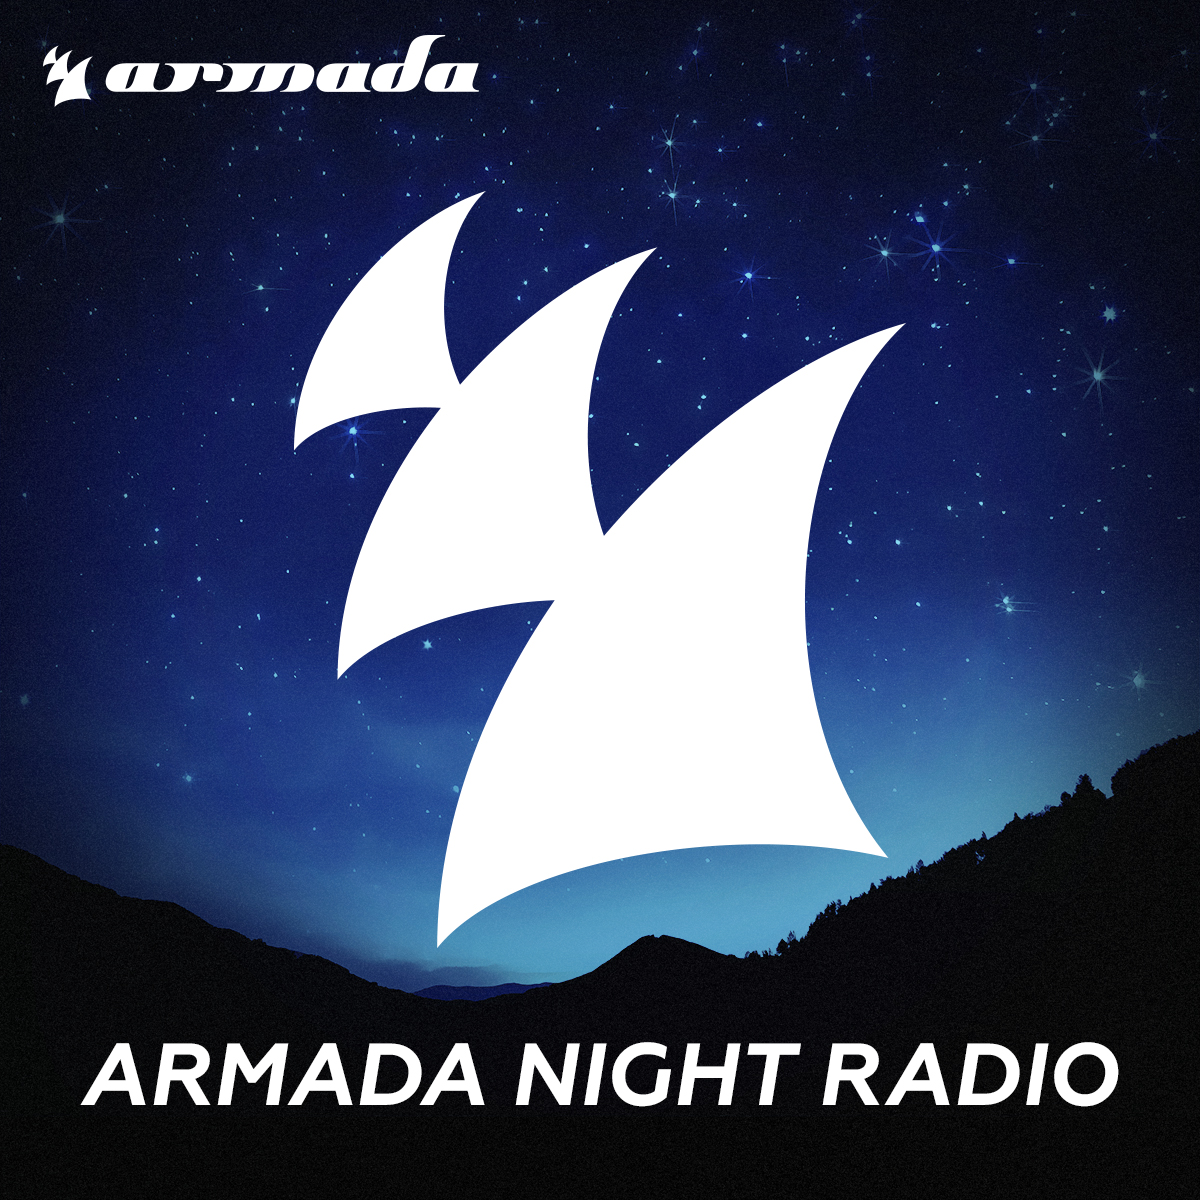 Armada Night Radio